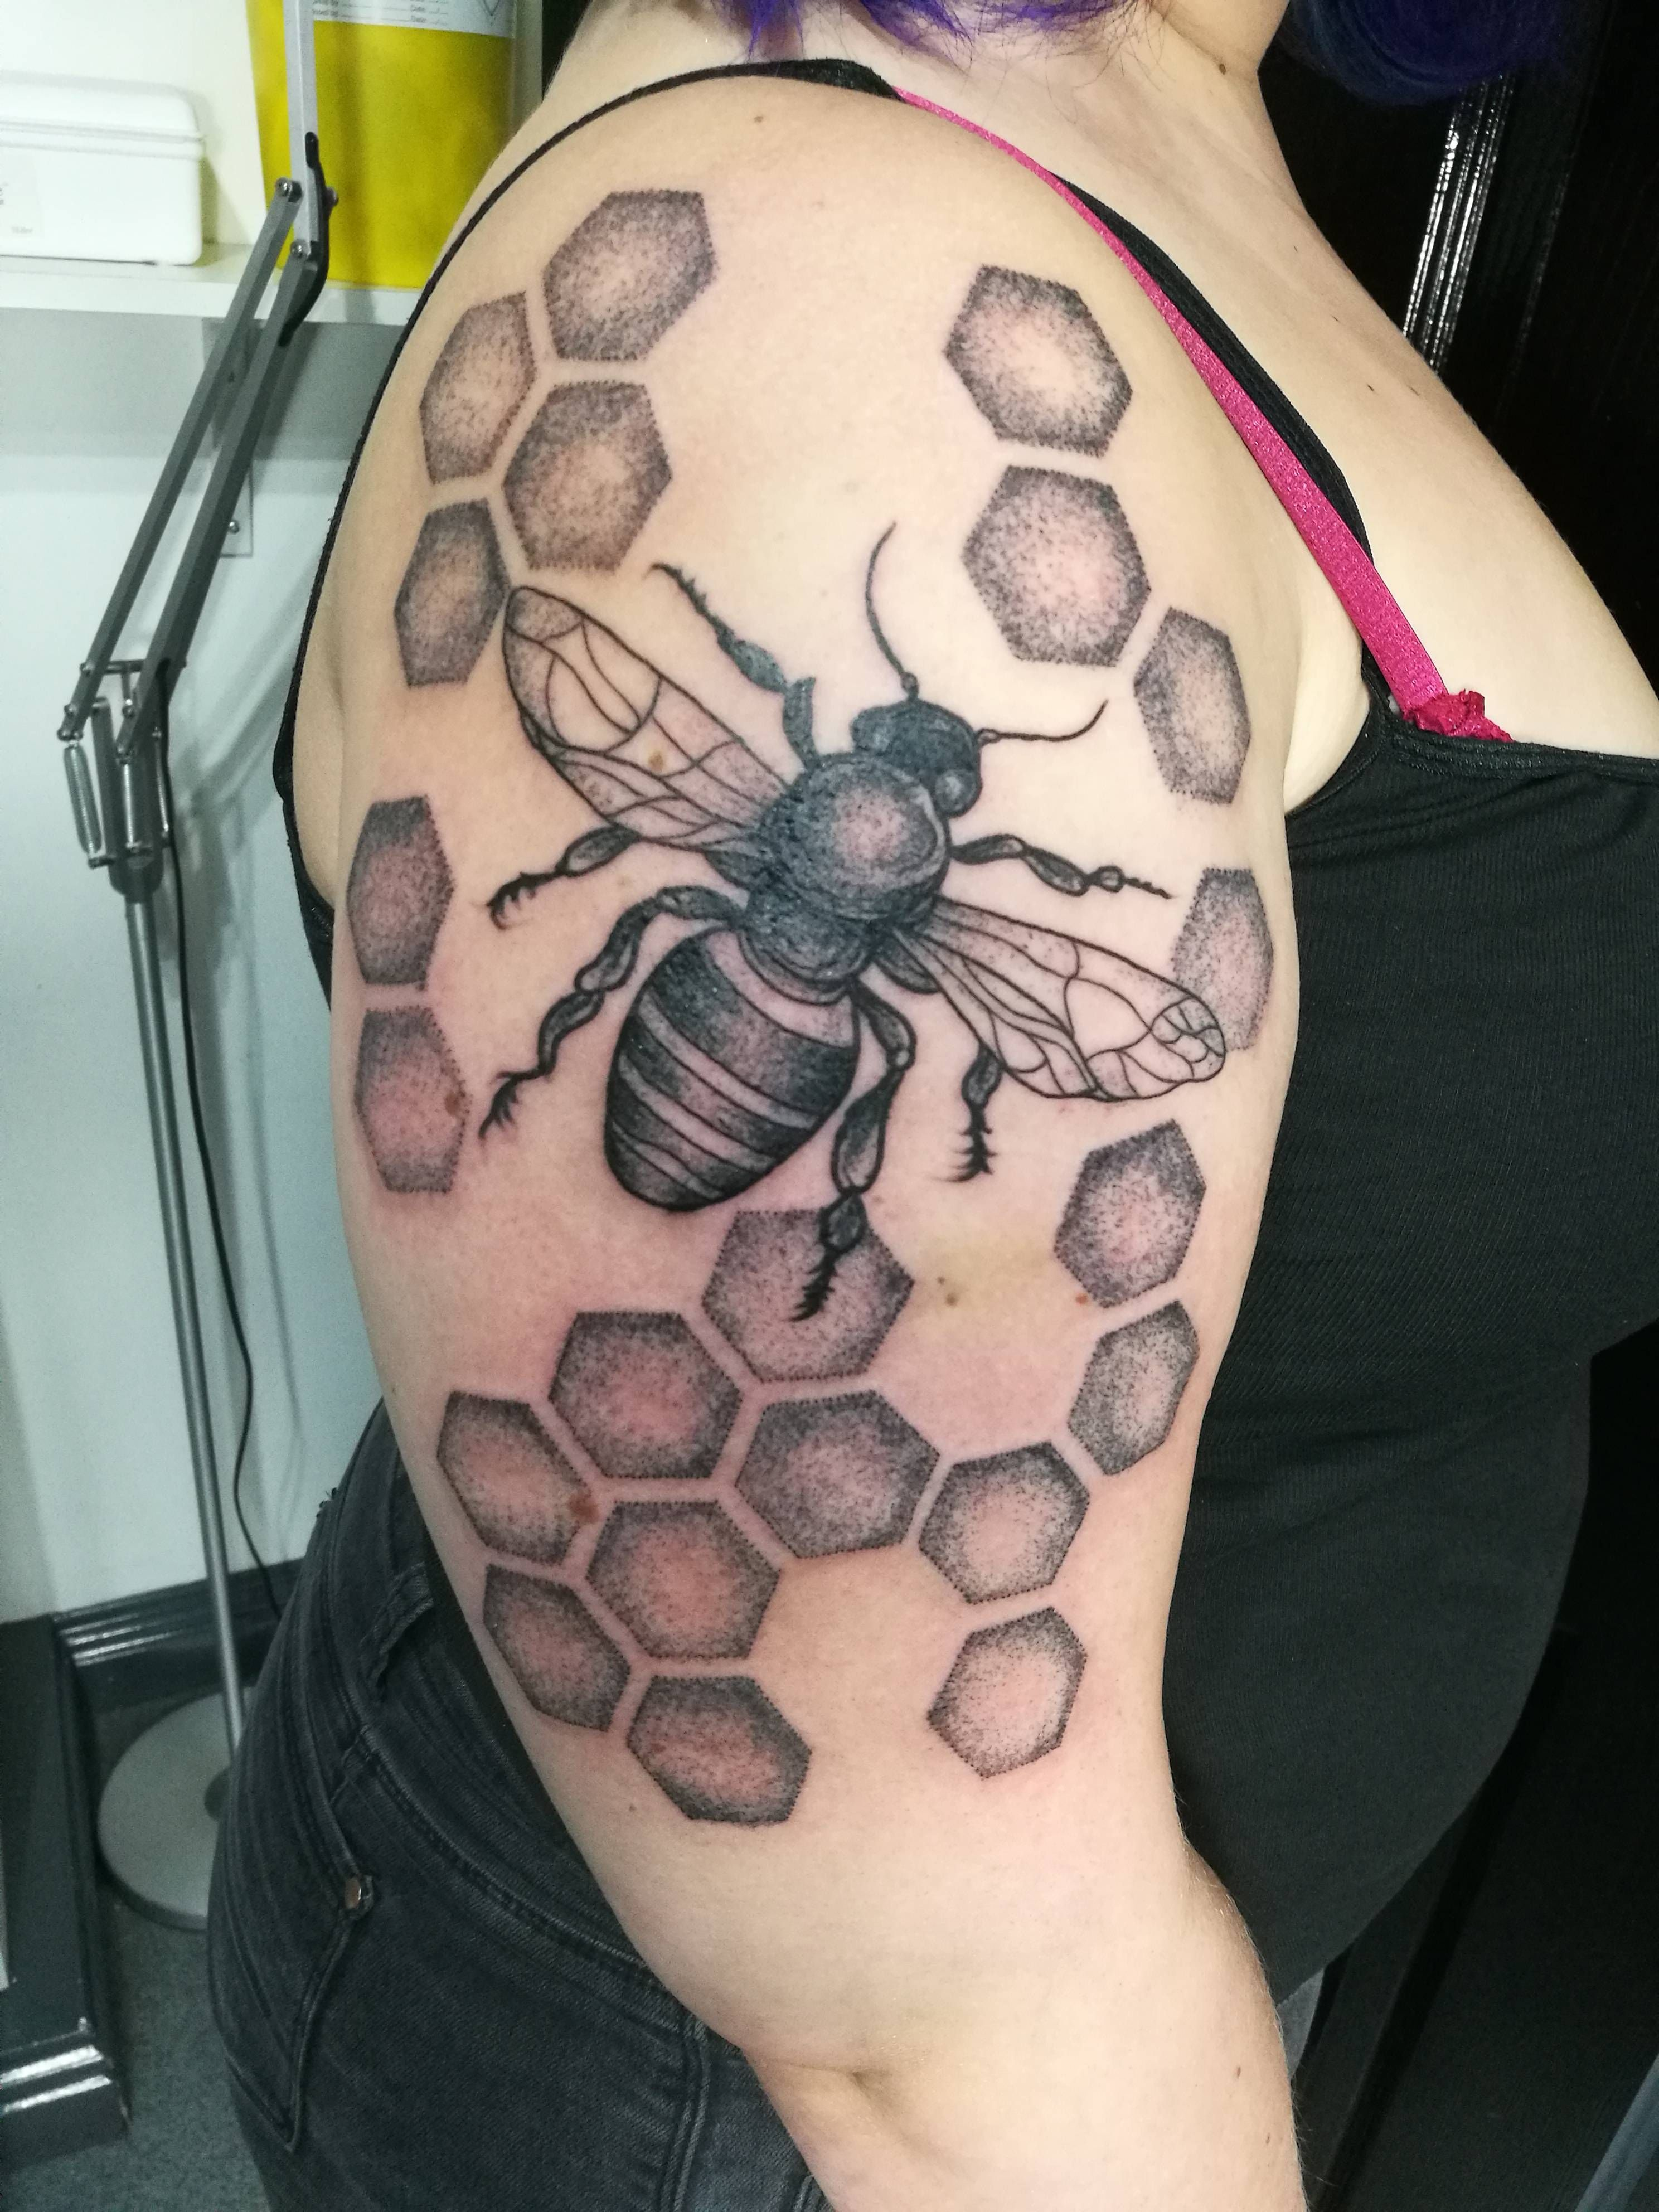 Dotwork bee by vlad at old london road tattoo in kingston